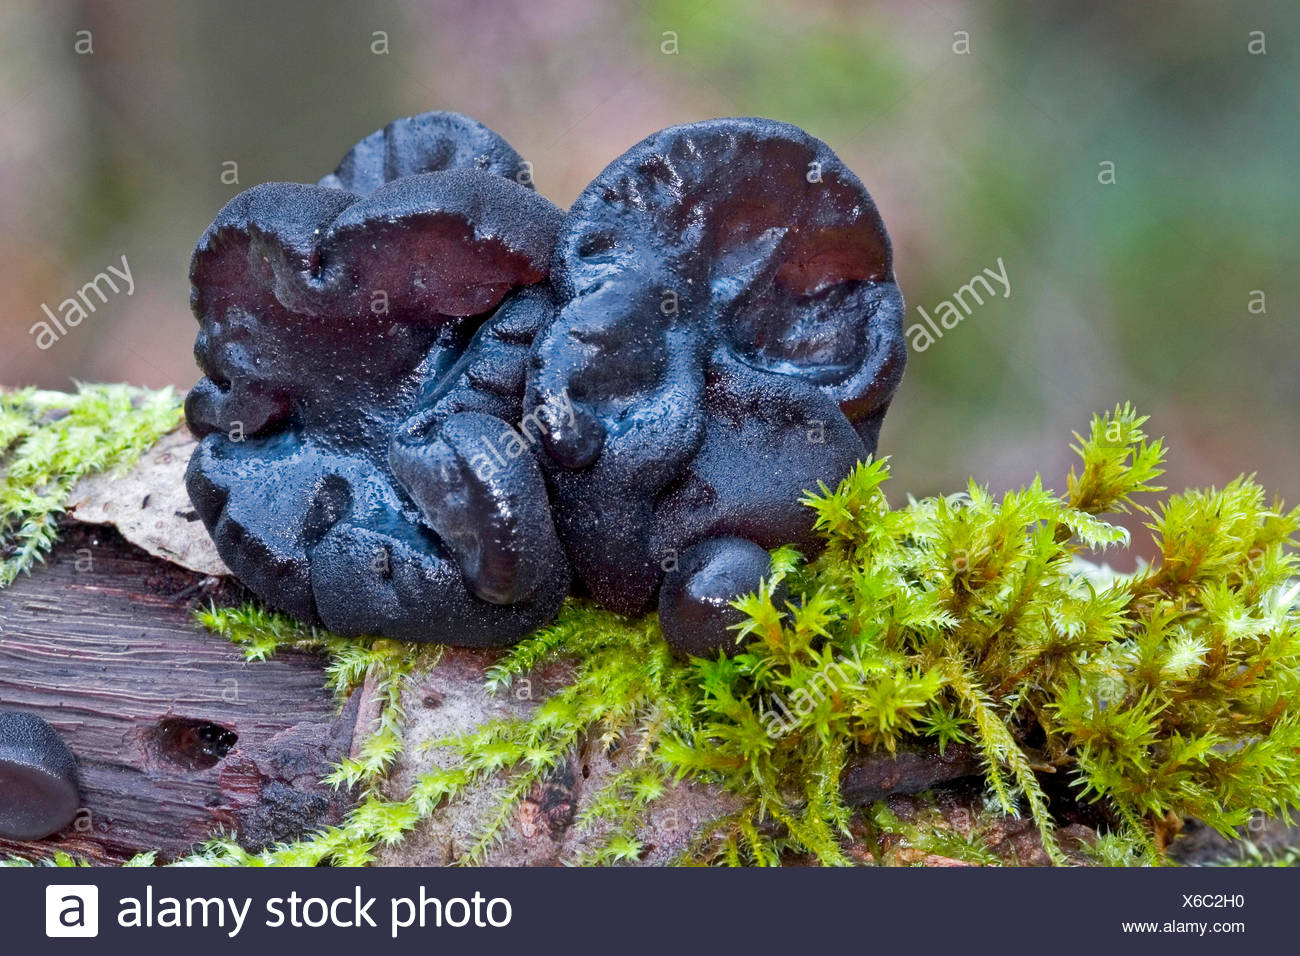 Witches' butter, Black witches' butter, Black jelly roll, Warty jelly fungus (Exidia glandulosa, Exidia truncata), fruiting body on mossy deadwood, Germany - Stock Image